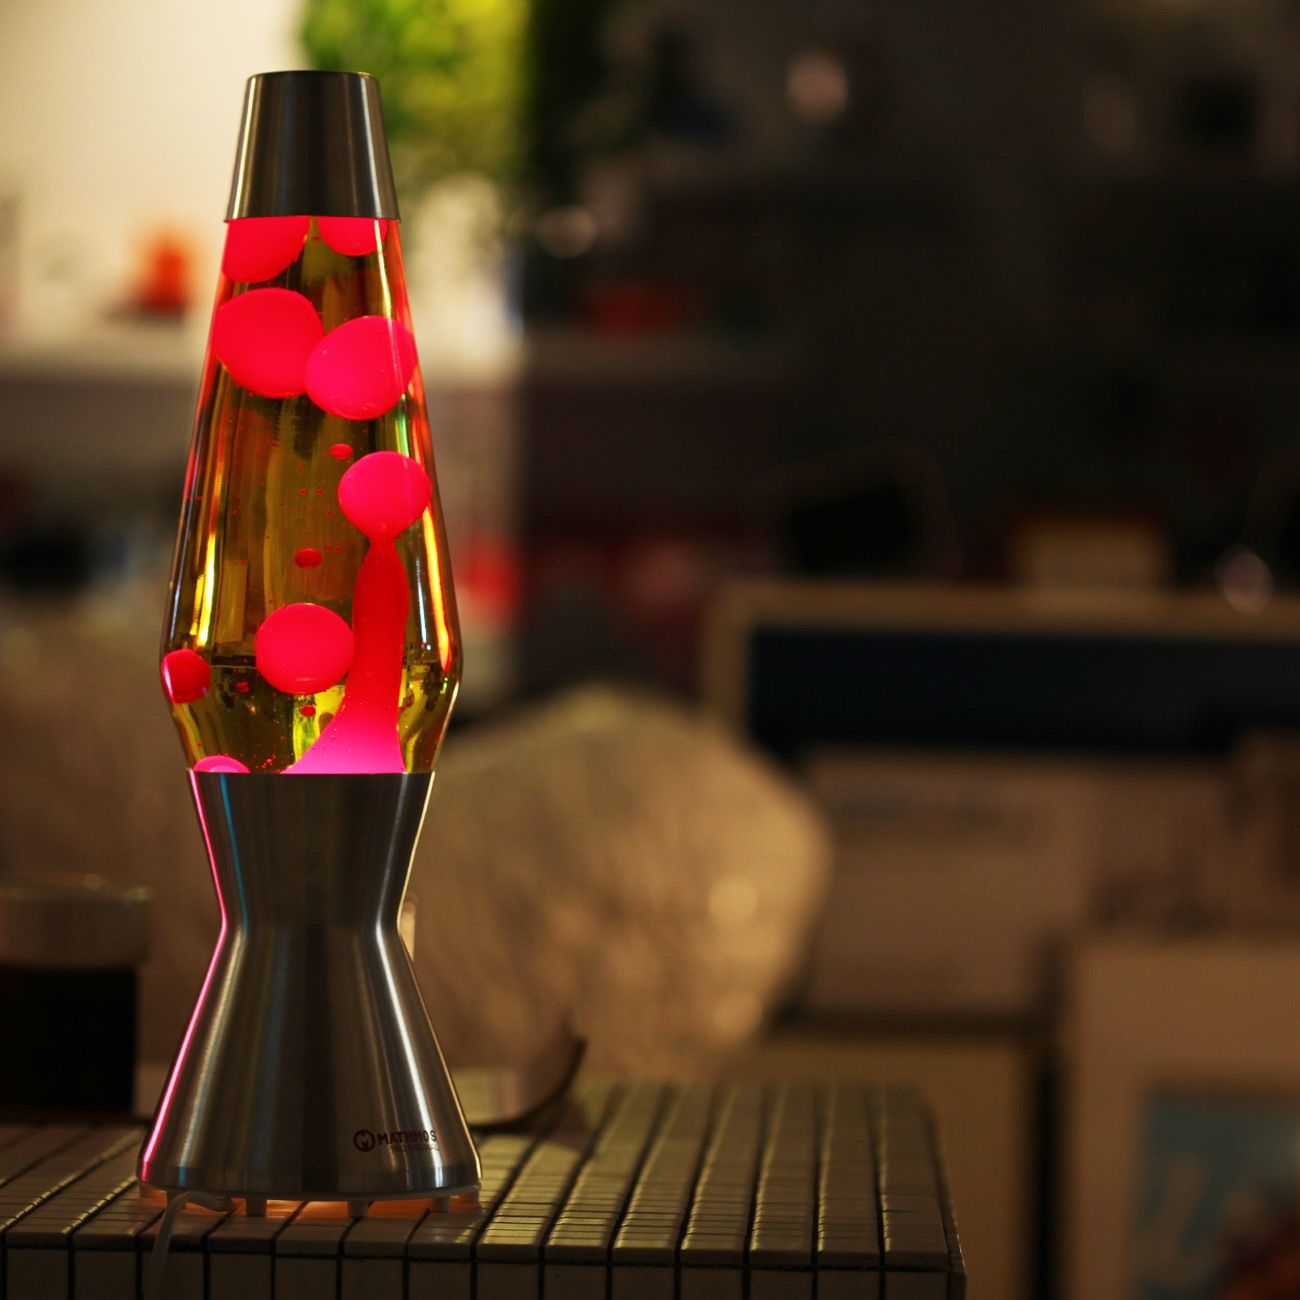 Lava lamp wattage - Emo Mathmos Creative Living Room Bedroom Home Decorative Lighting Fixtures Astro Lava Lamp Yellow Red